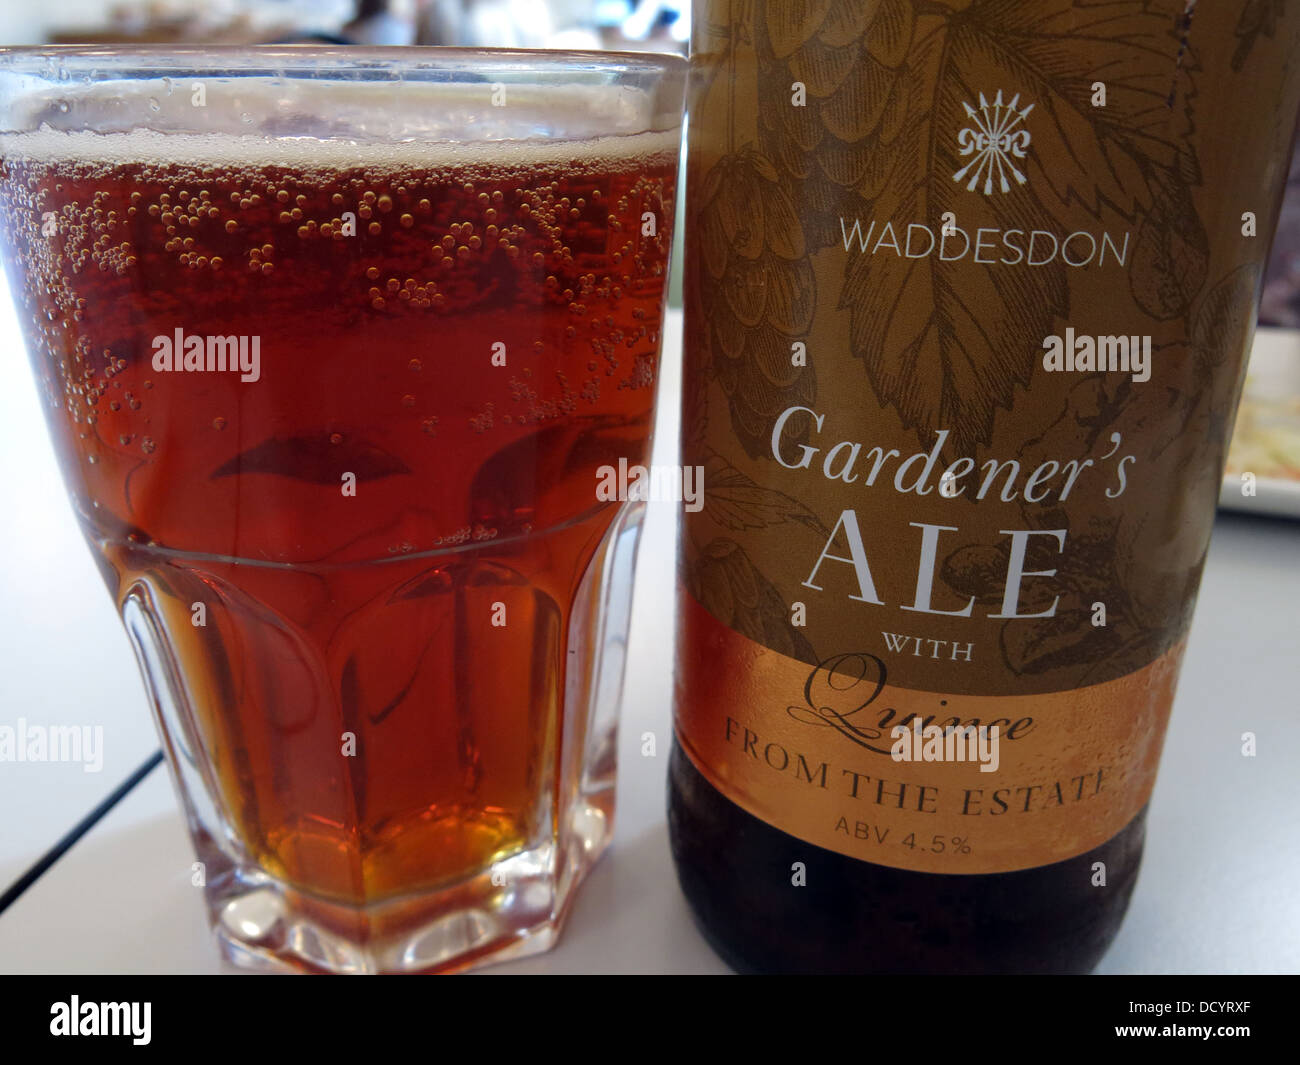 Waddesdon Gardener's ale with quince, from the estate, Bucks, England, UK - Stock Image